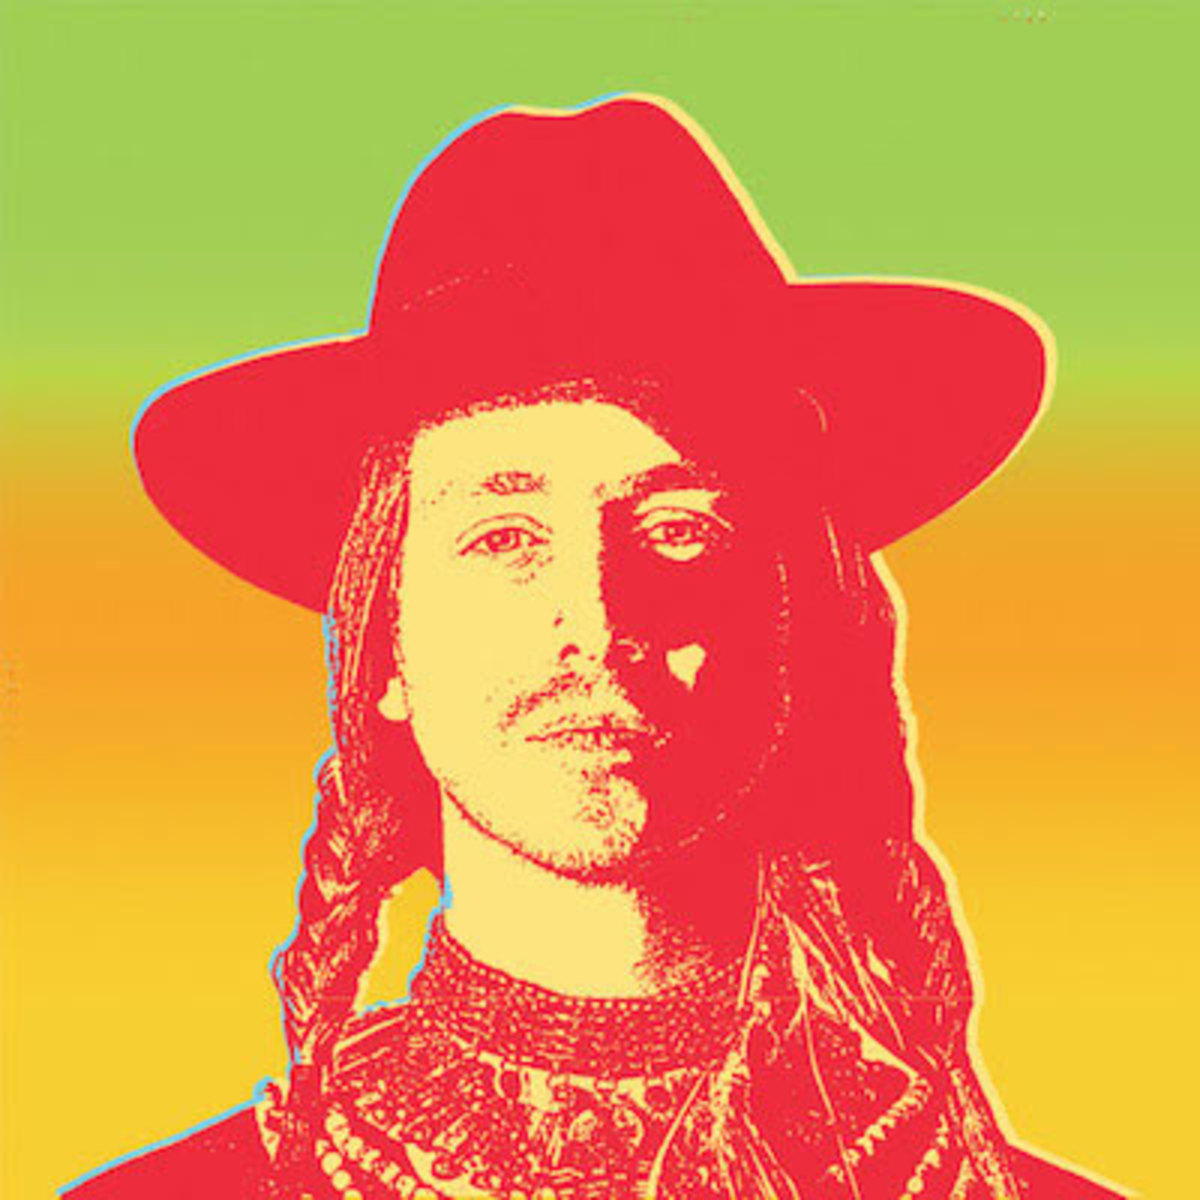 asherroth-retrohash.jpg